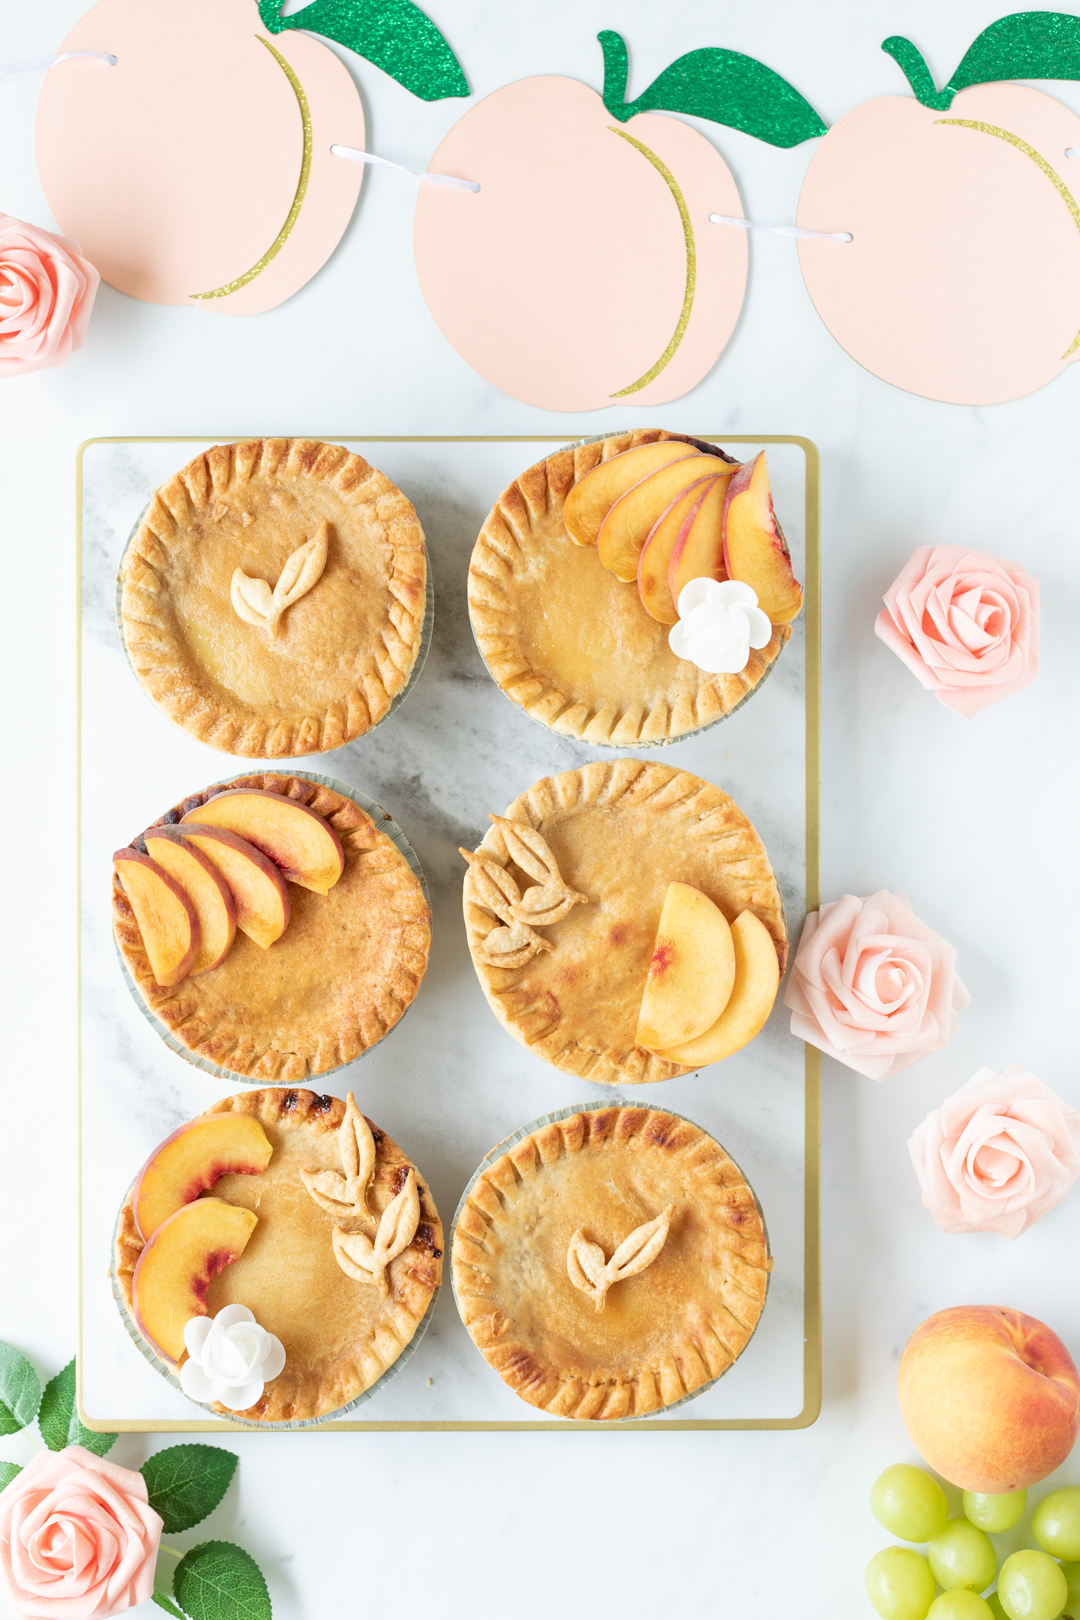 pies set out on a rectangular platter with peach colored decorations like faux flowers and peach banner.